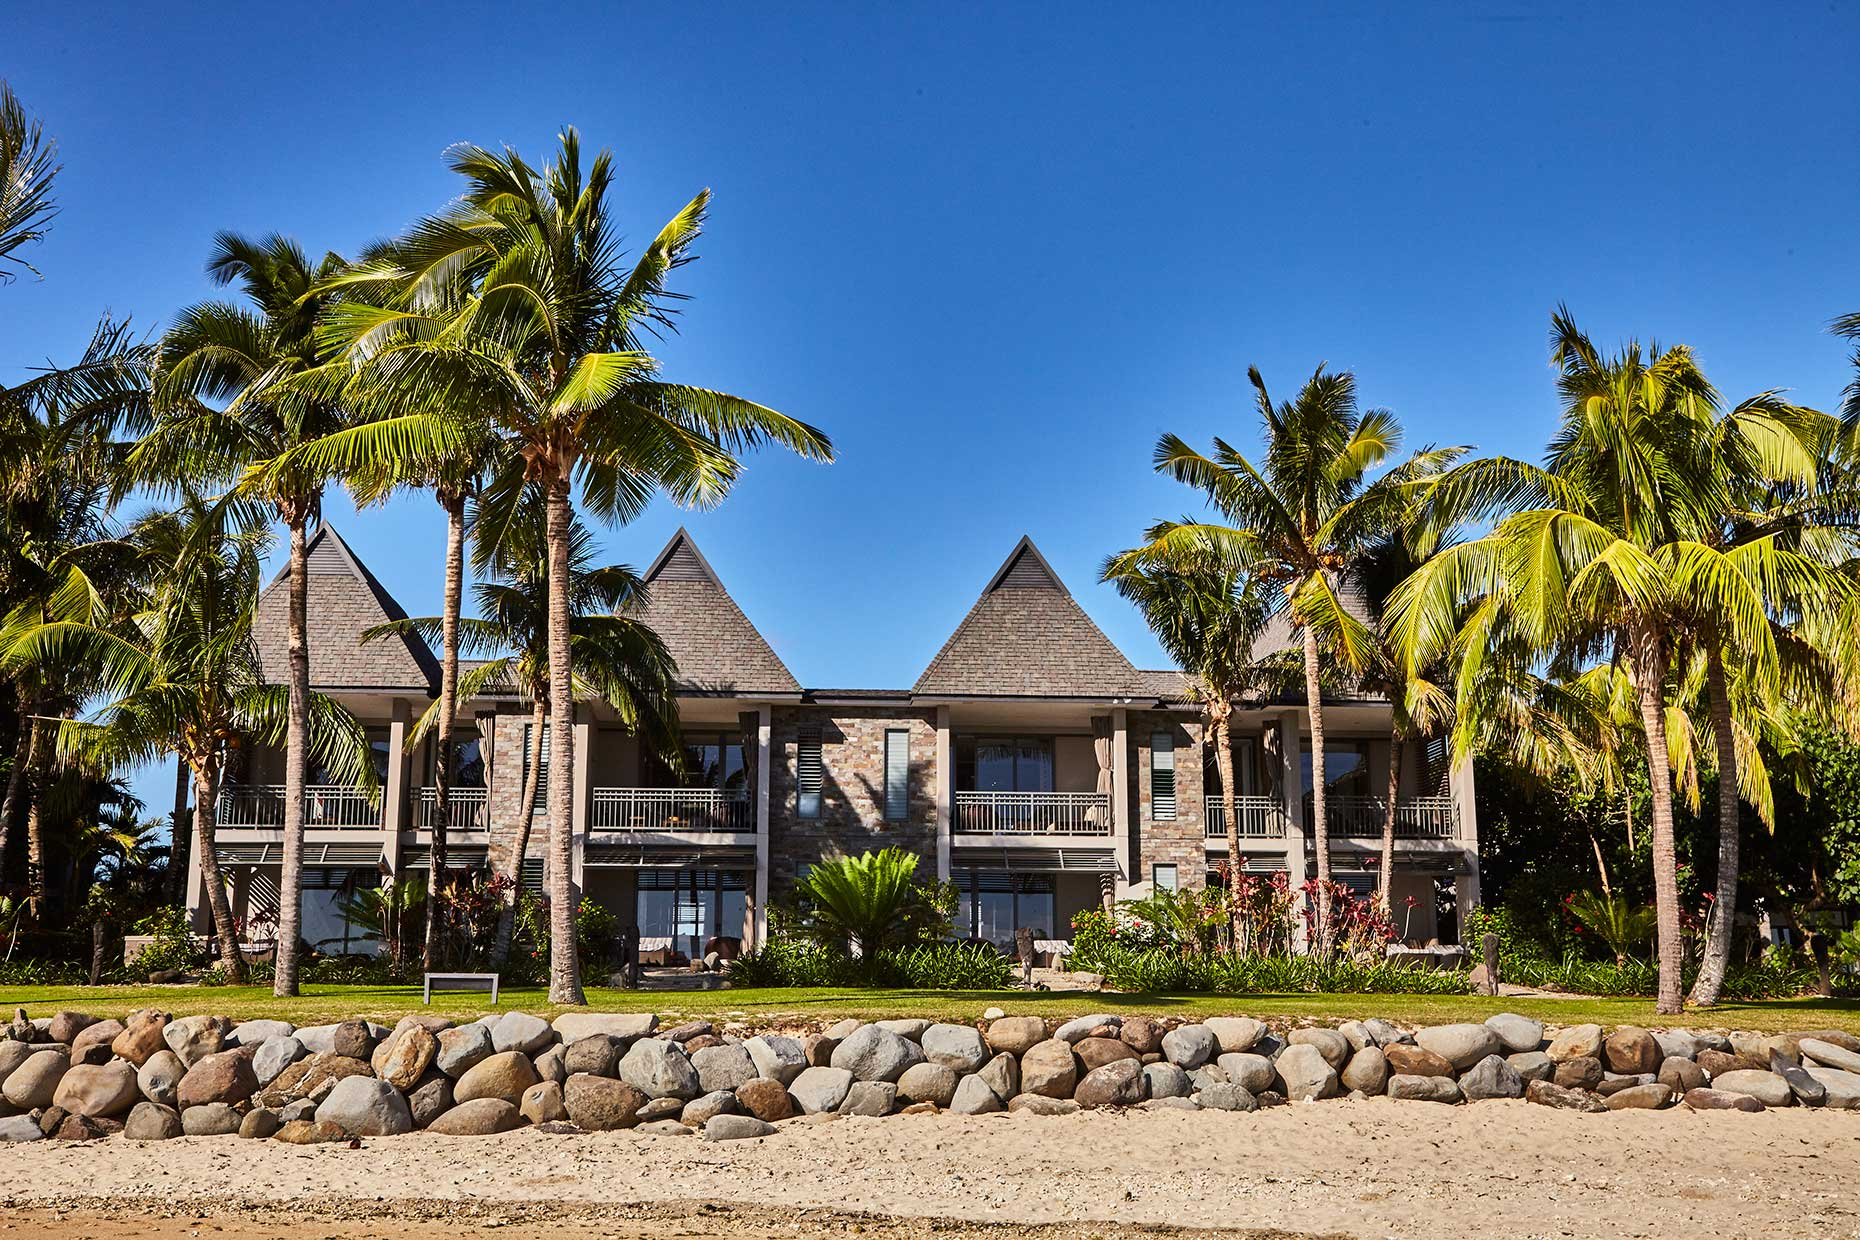 World-Venture_FIji_Day-1_Hotel_001